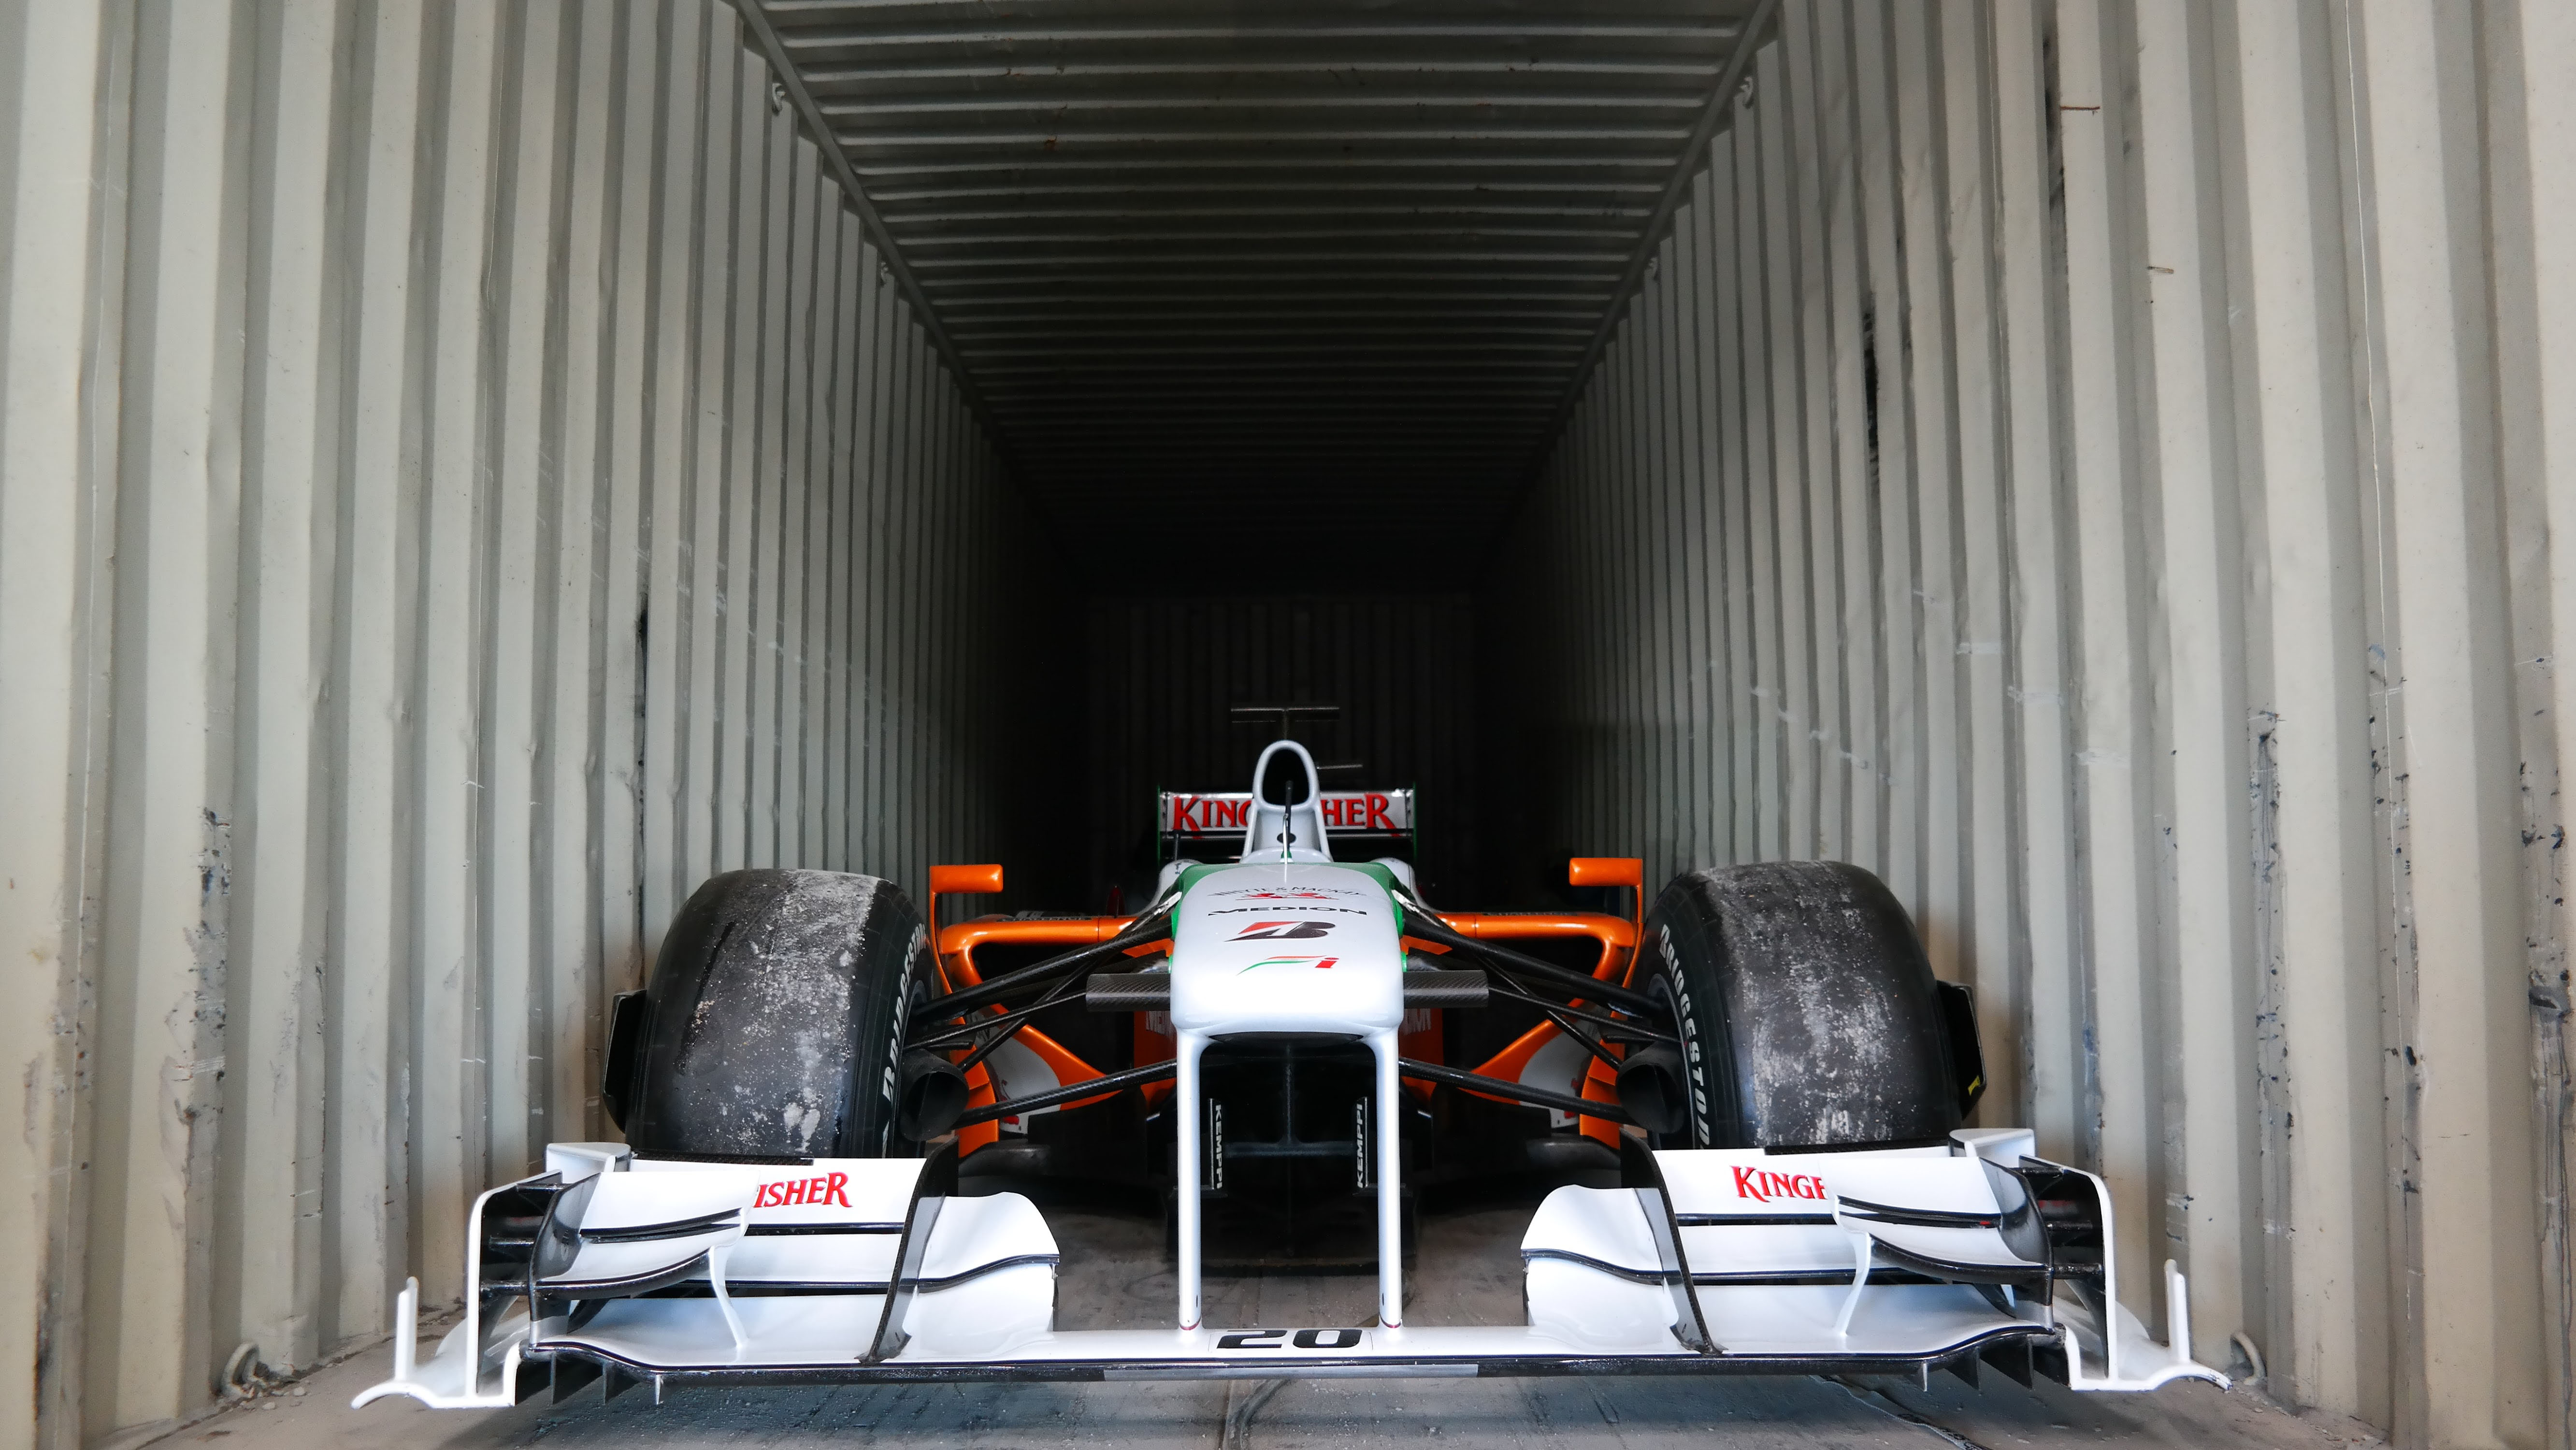 Shipping a Force India F1 car overseas